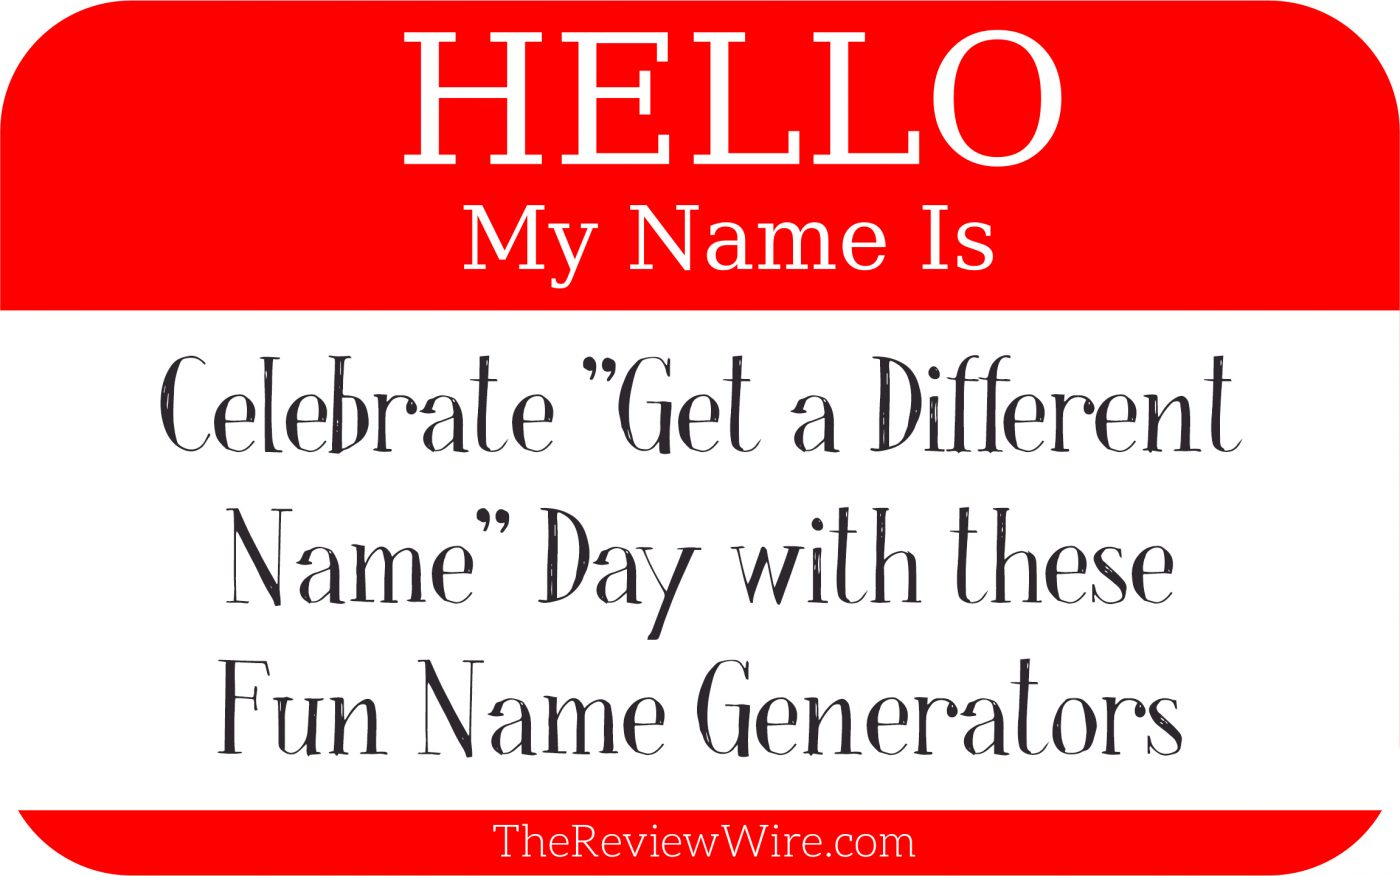 Get A Different Name Day Generators The Review Wire Bloglovin Kic Stove Wiring Diagram